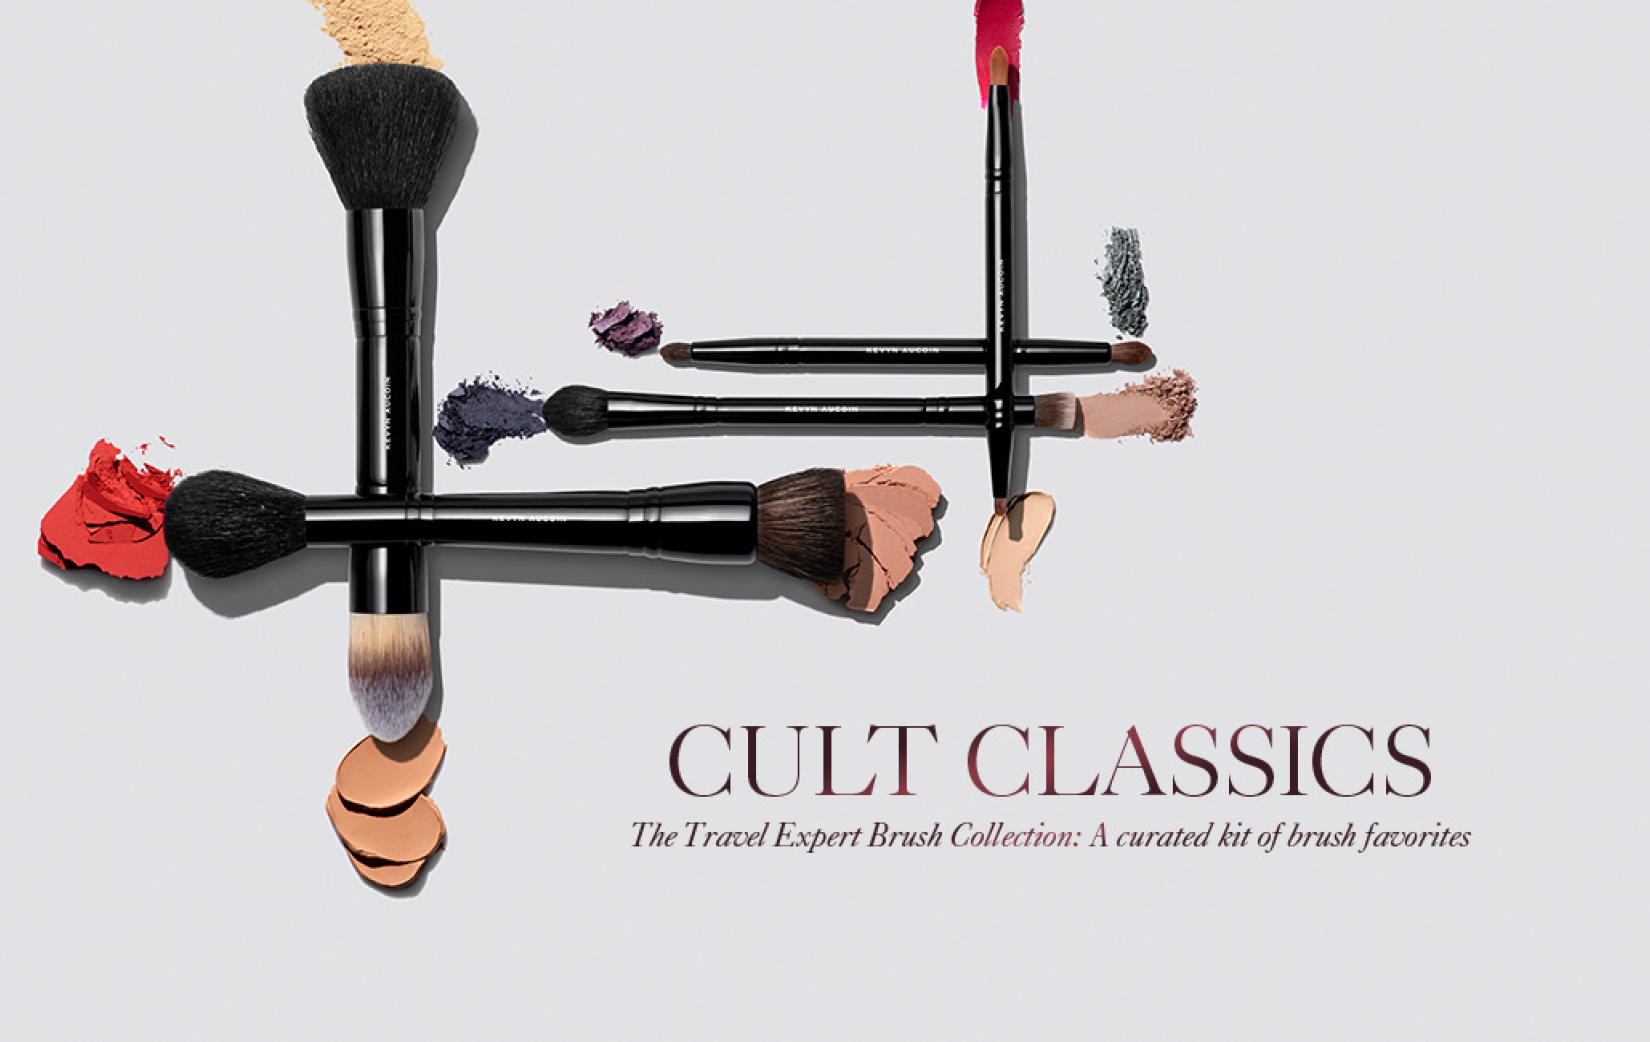 Kevyn Aucoin's expert brush collection called cult classics